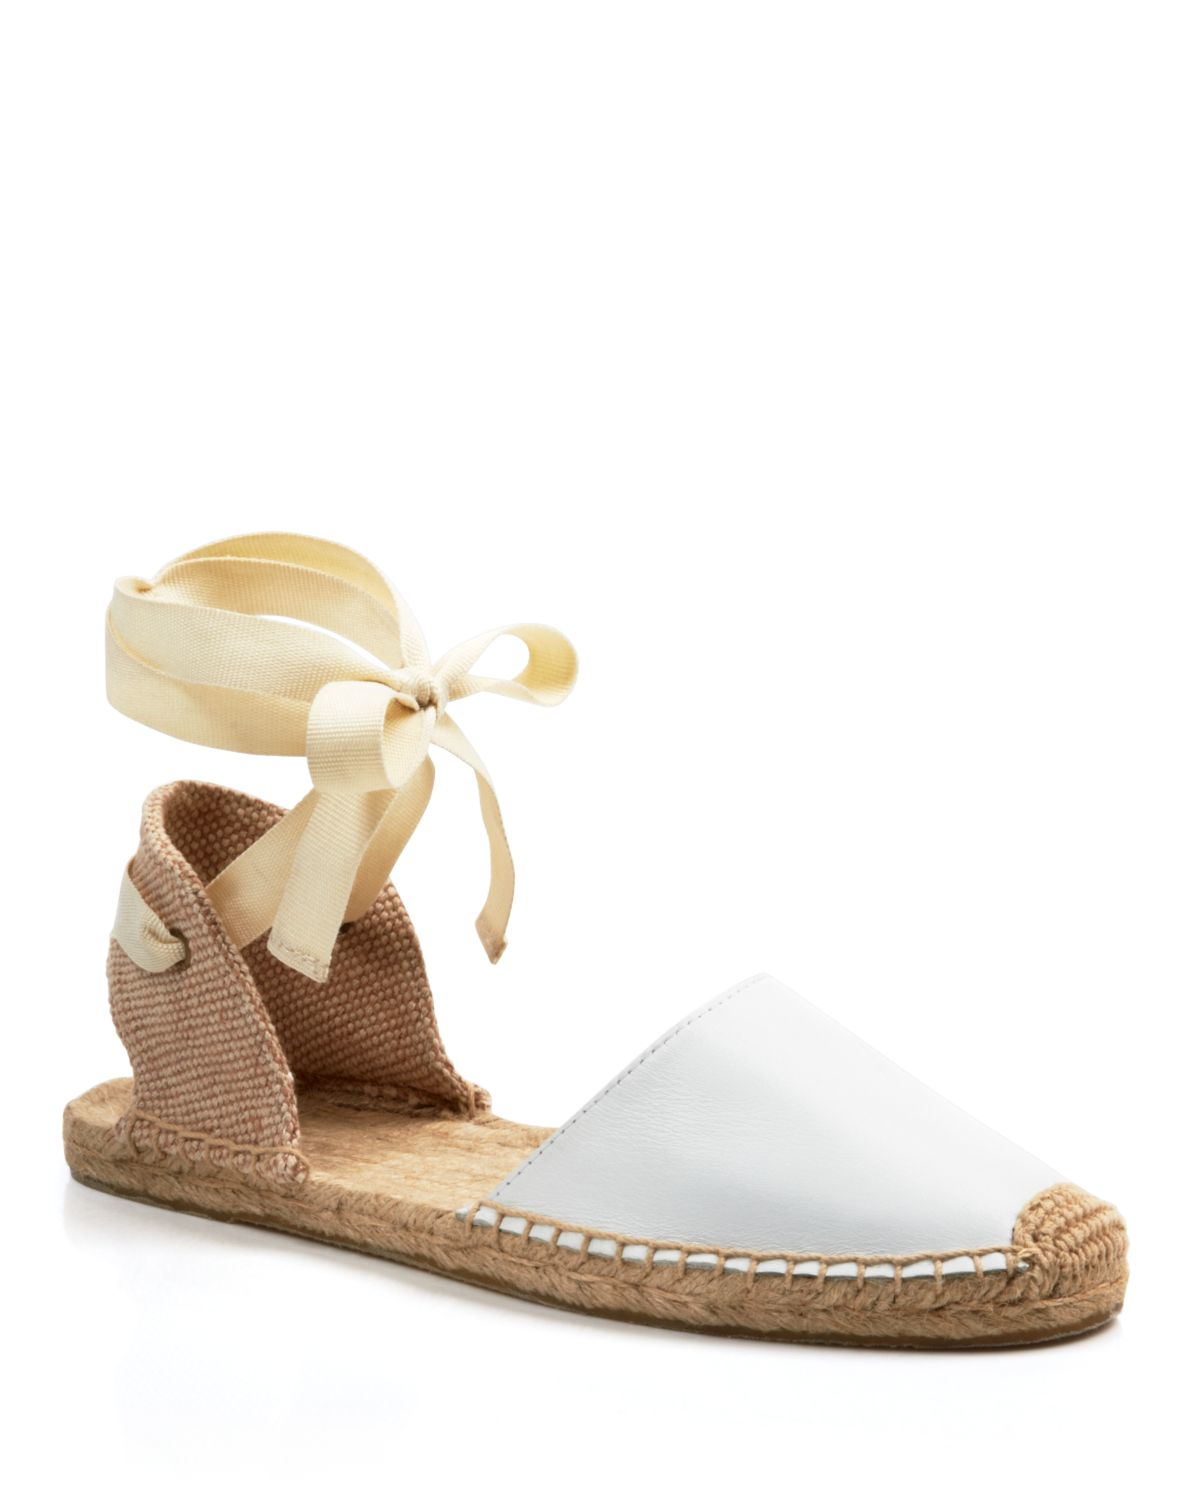 dc40a0b4ae71 Lyst - Soludos Espadrille Flat Sandals - Classic Ankle Wrap in White